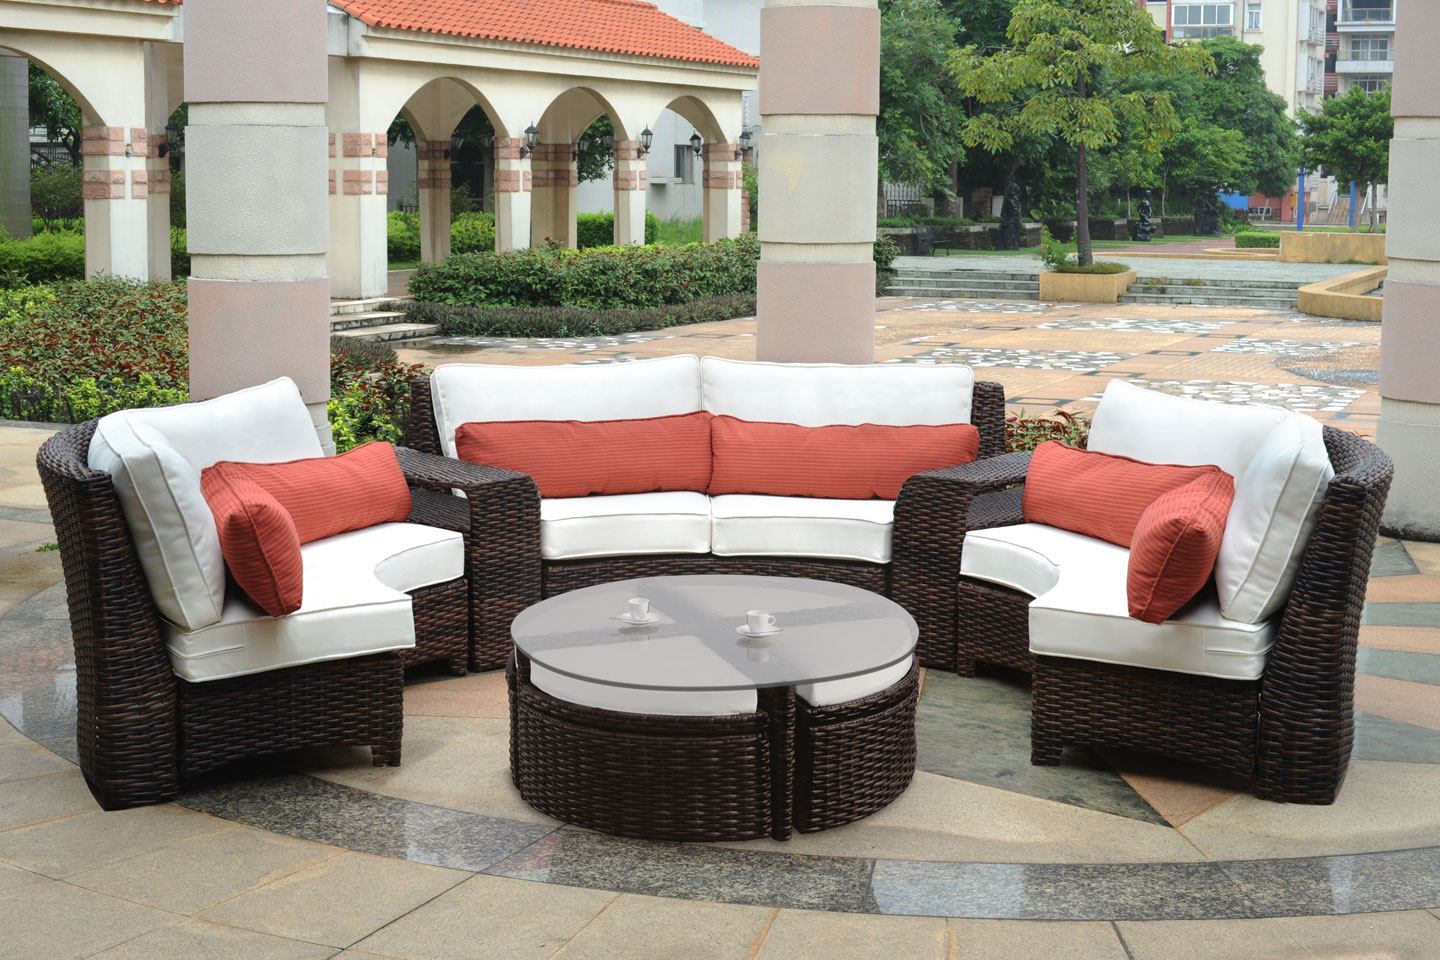 resin wicker lounge chairs sale walmart executive chair fiji curved outdoor patio sectional clubfurniture.com